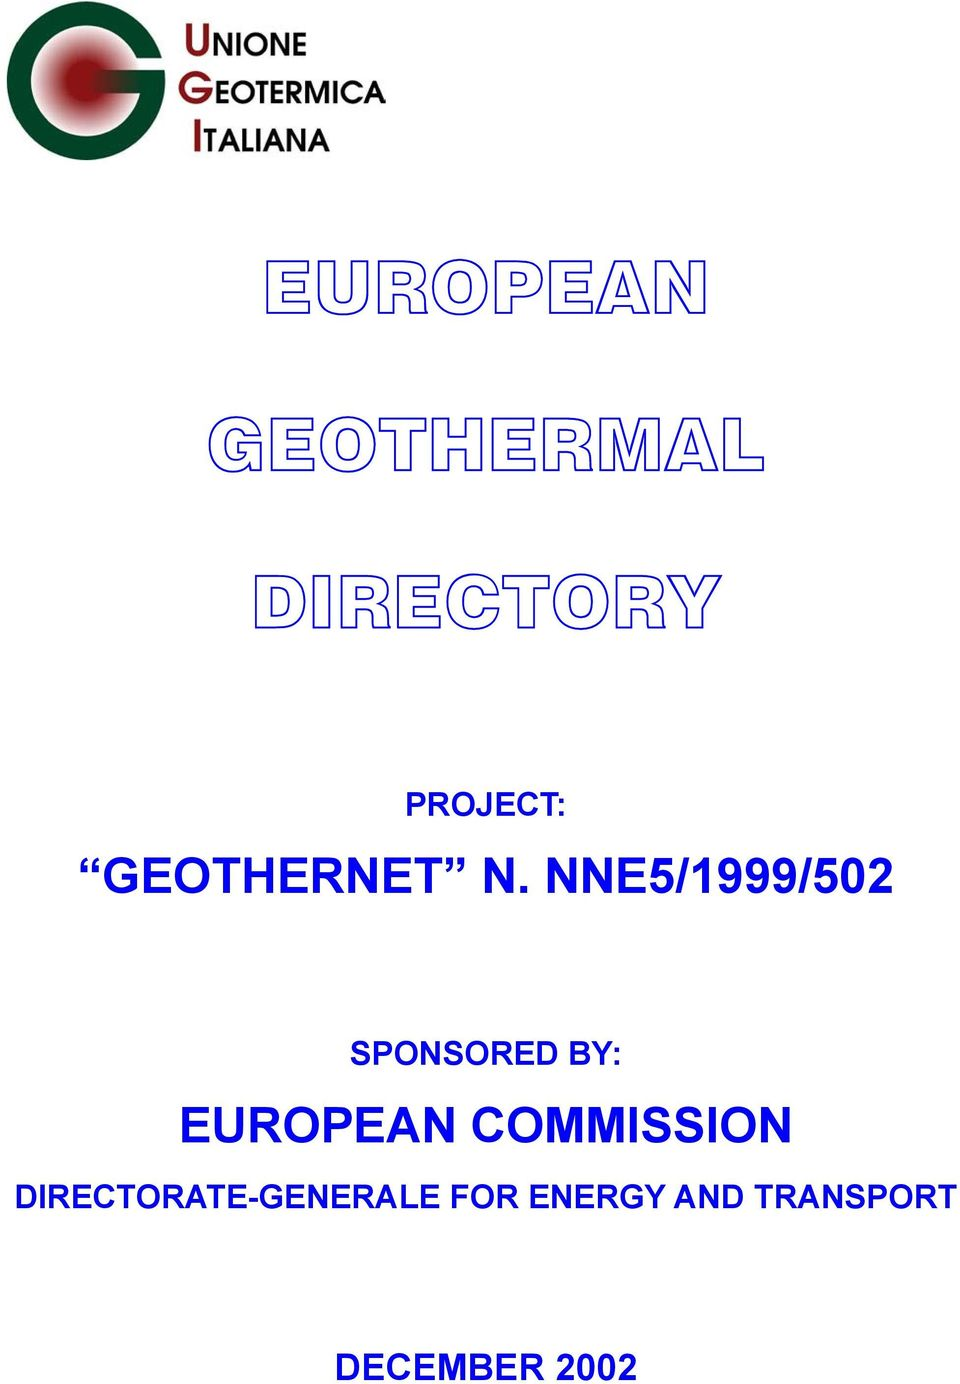 NNE5/1999/502 SPONSORED BY: EUROPEAN